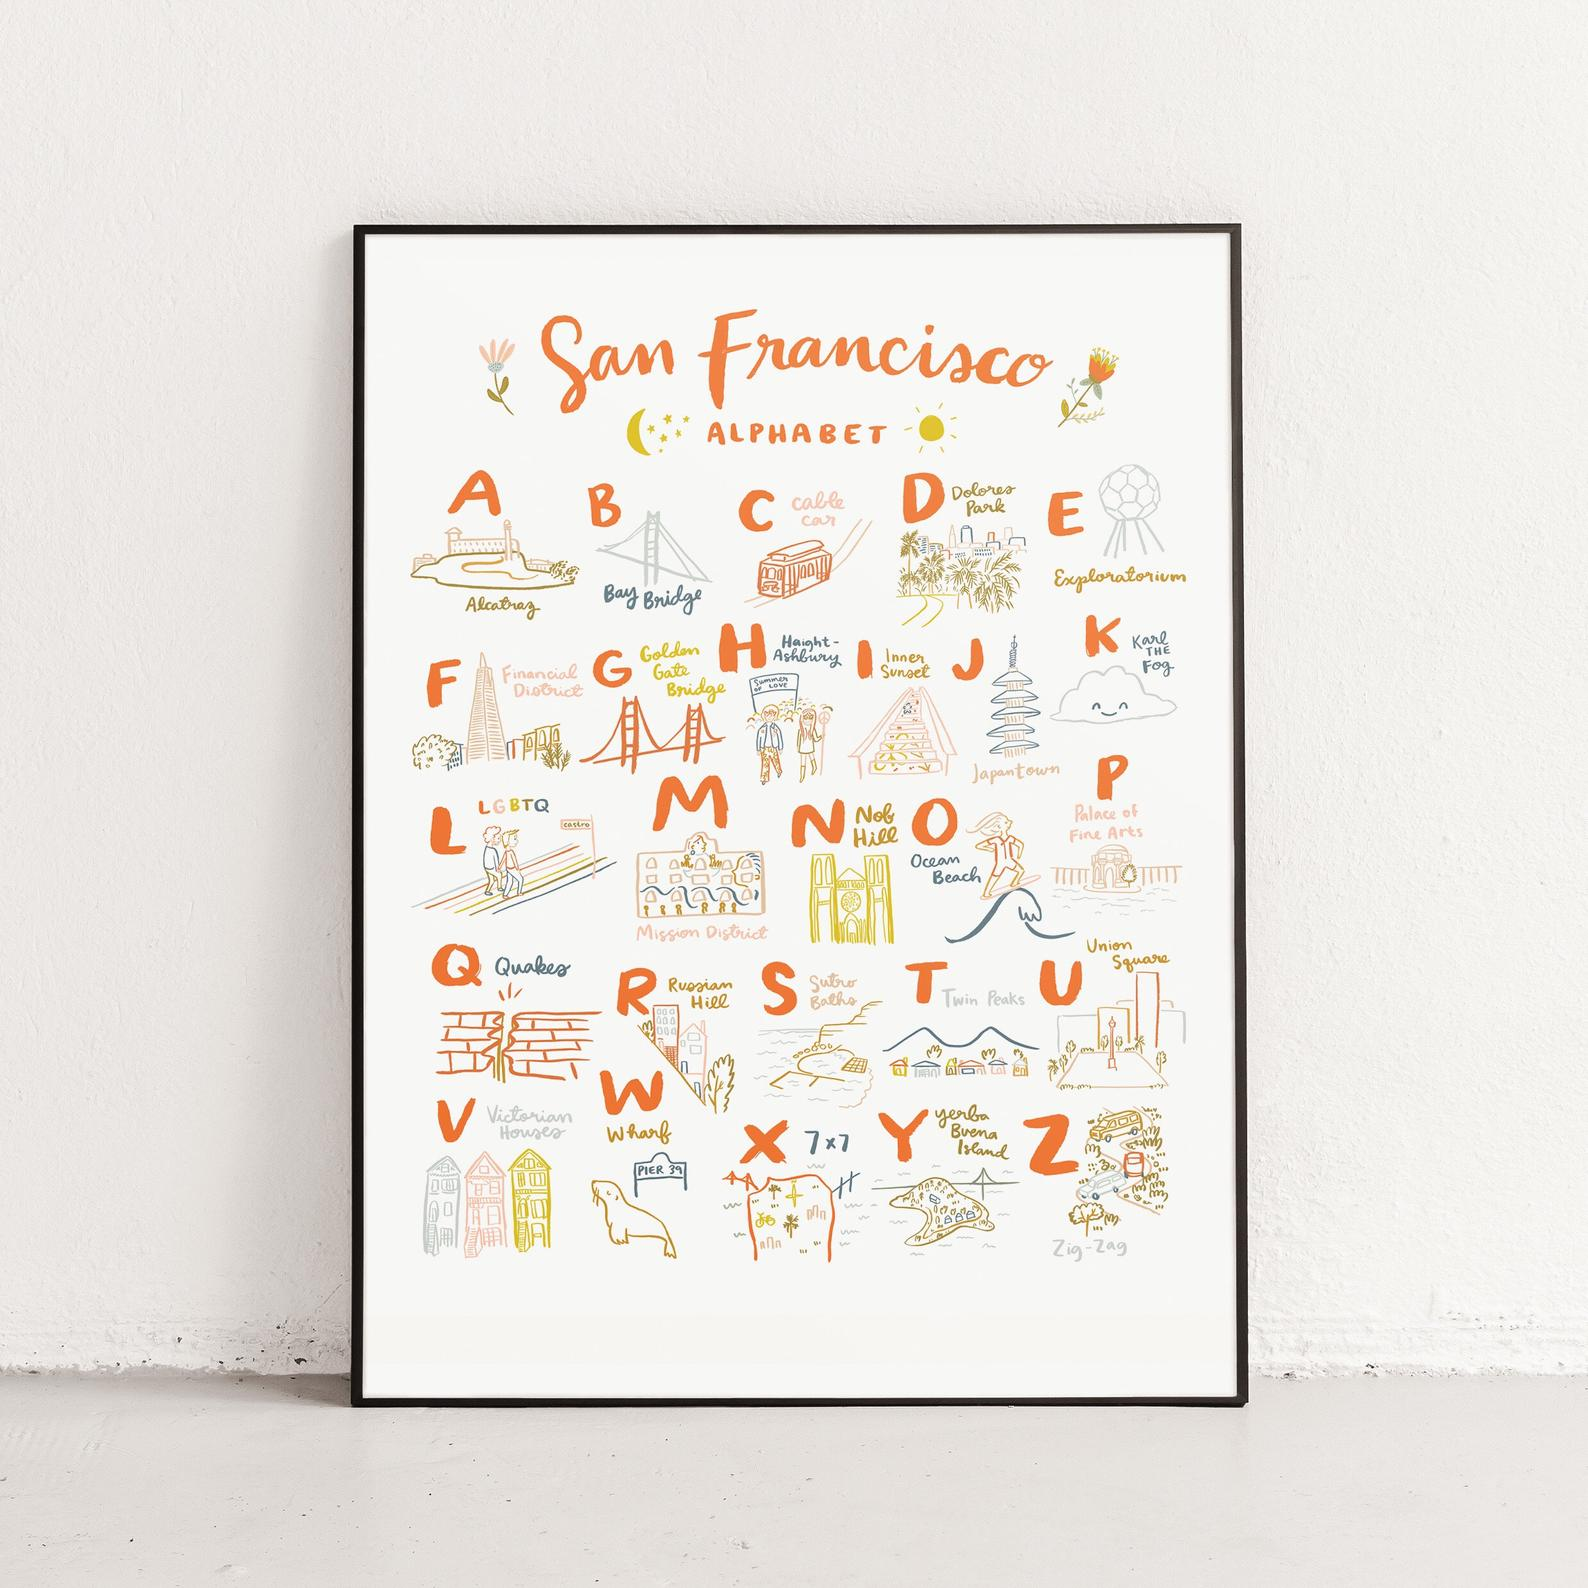 San Francisco Alphabet Poster By Abbie Illustrations